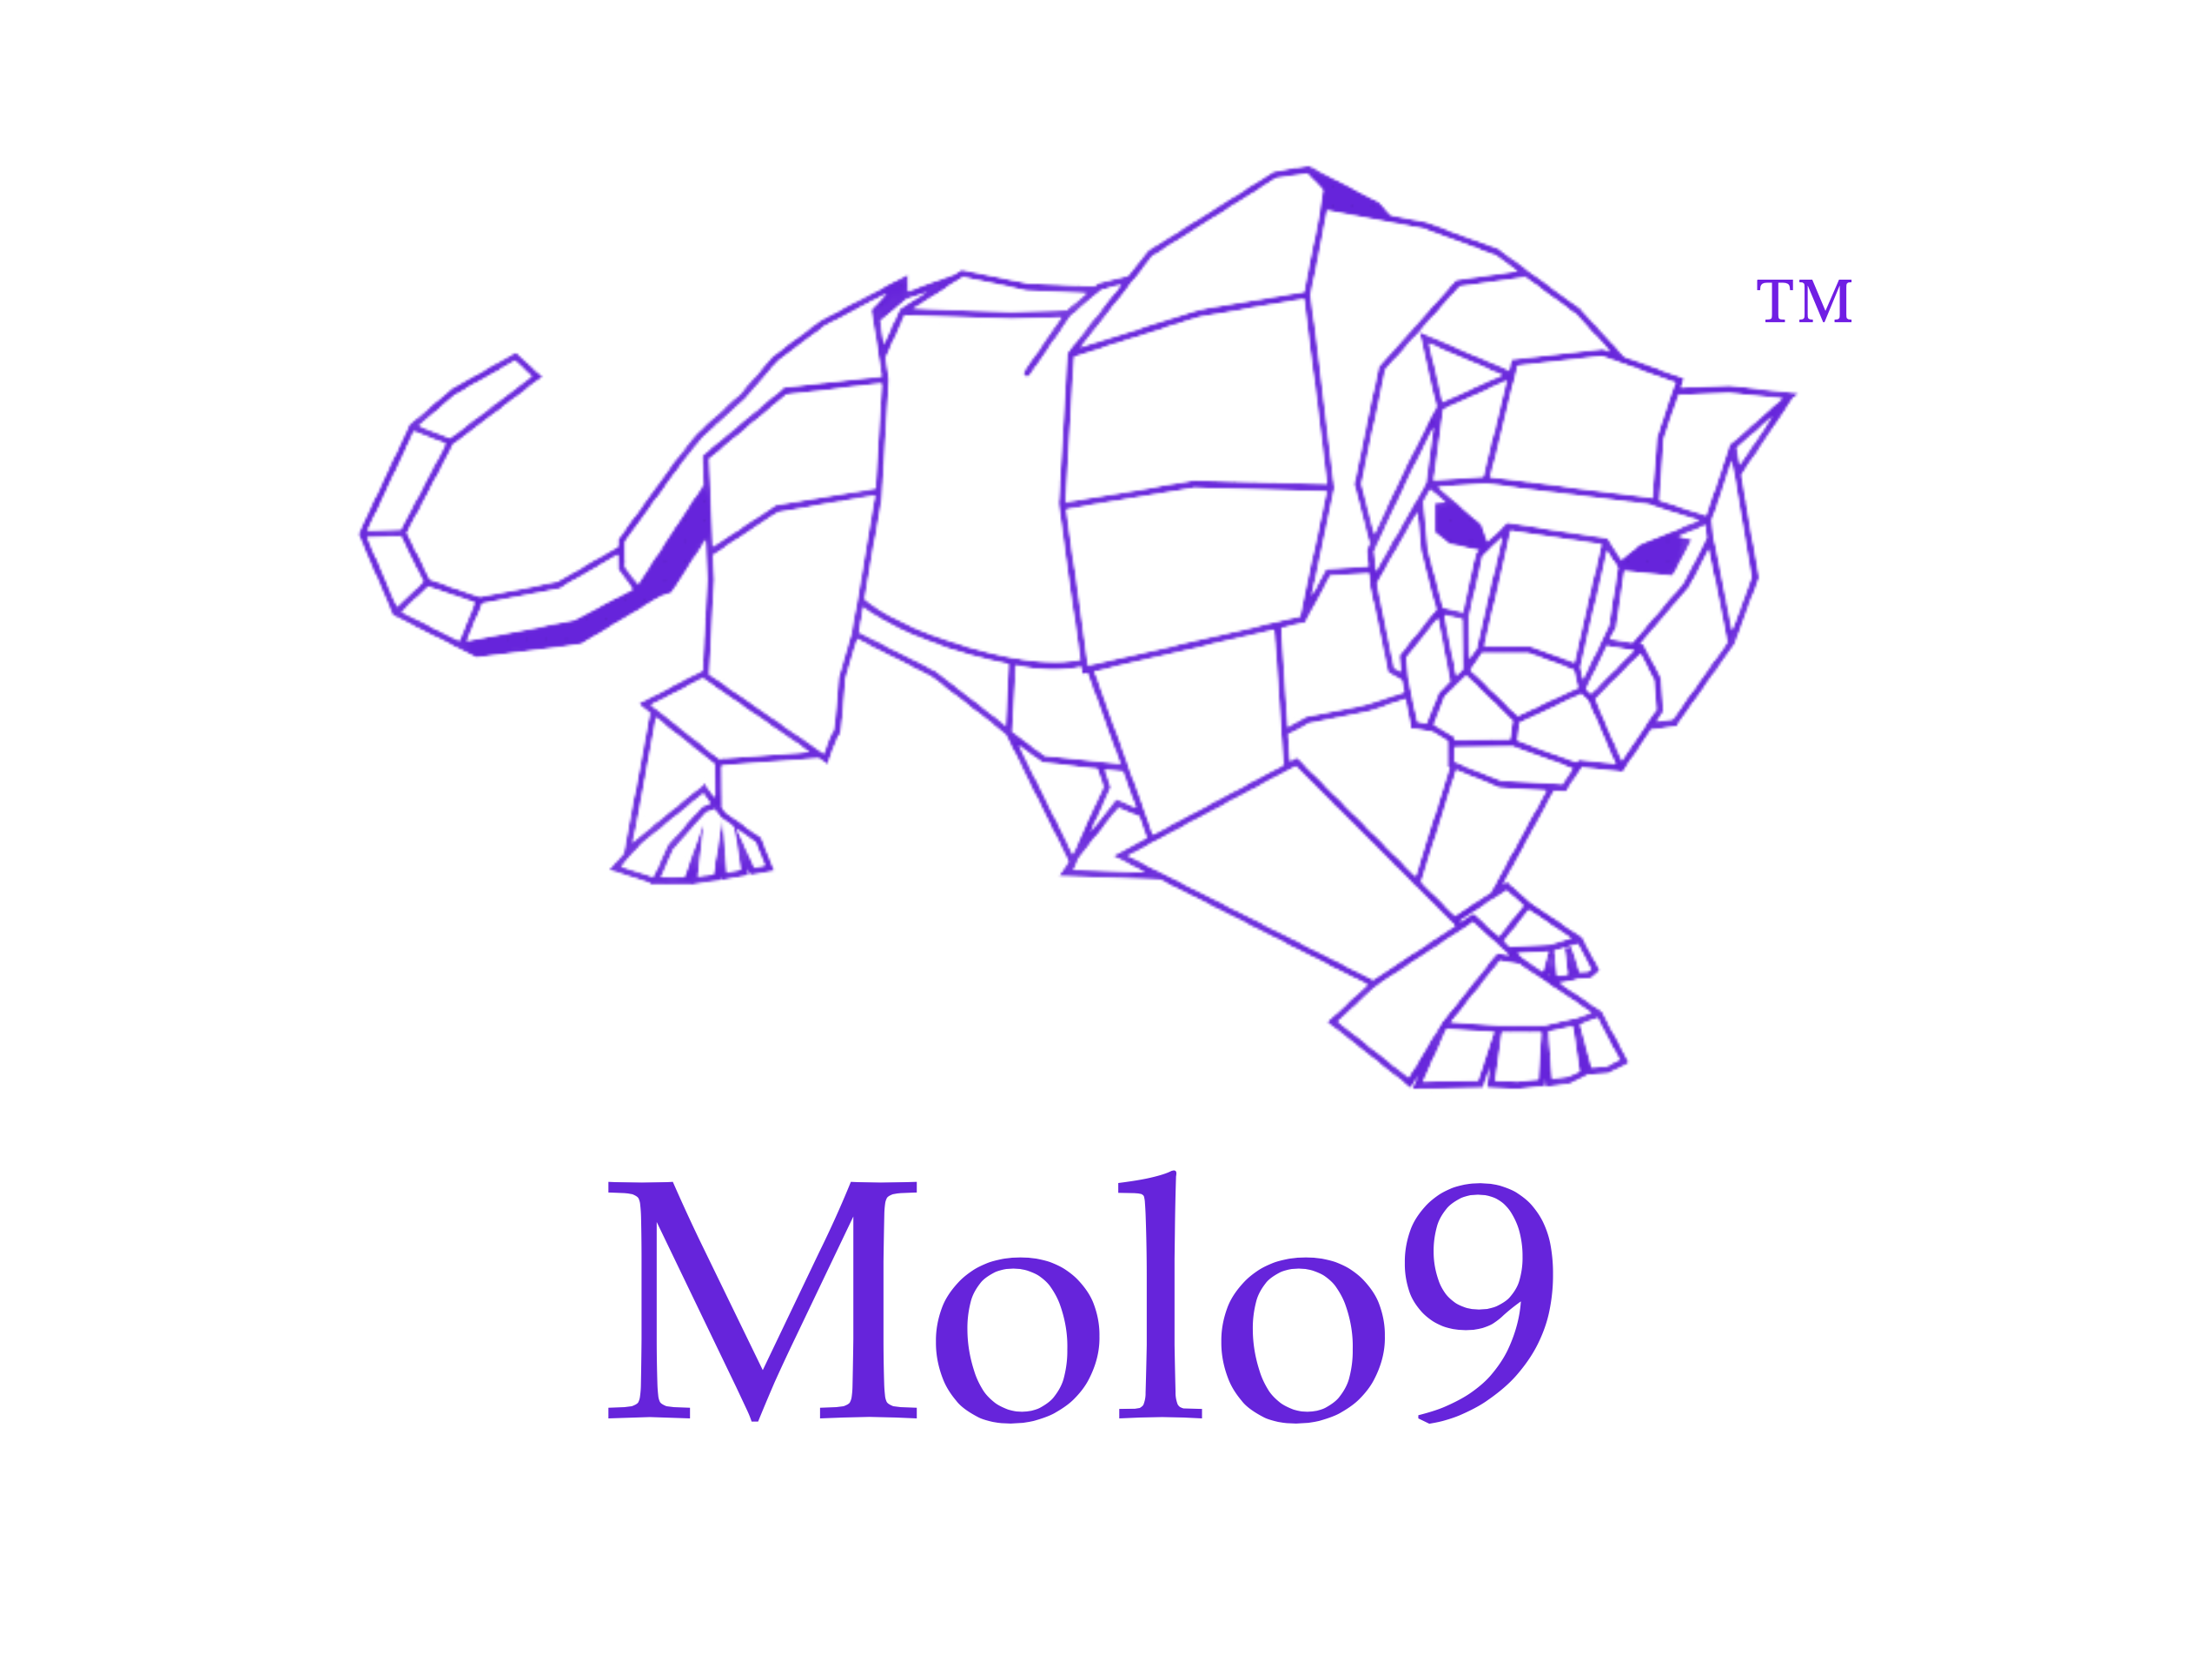 Molo9™ Template - insert client name HERE